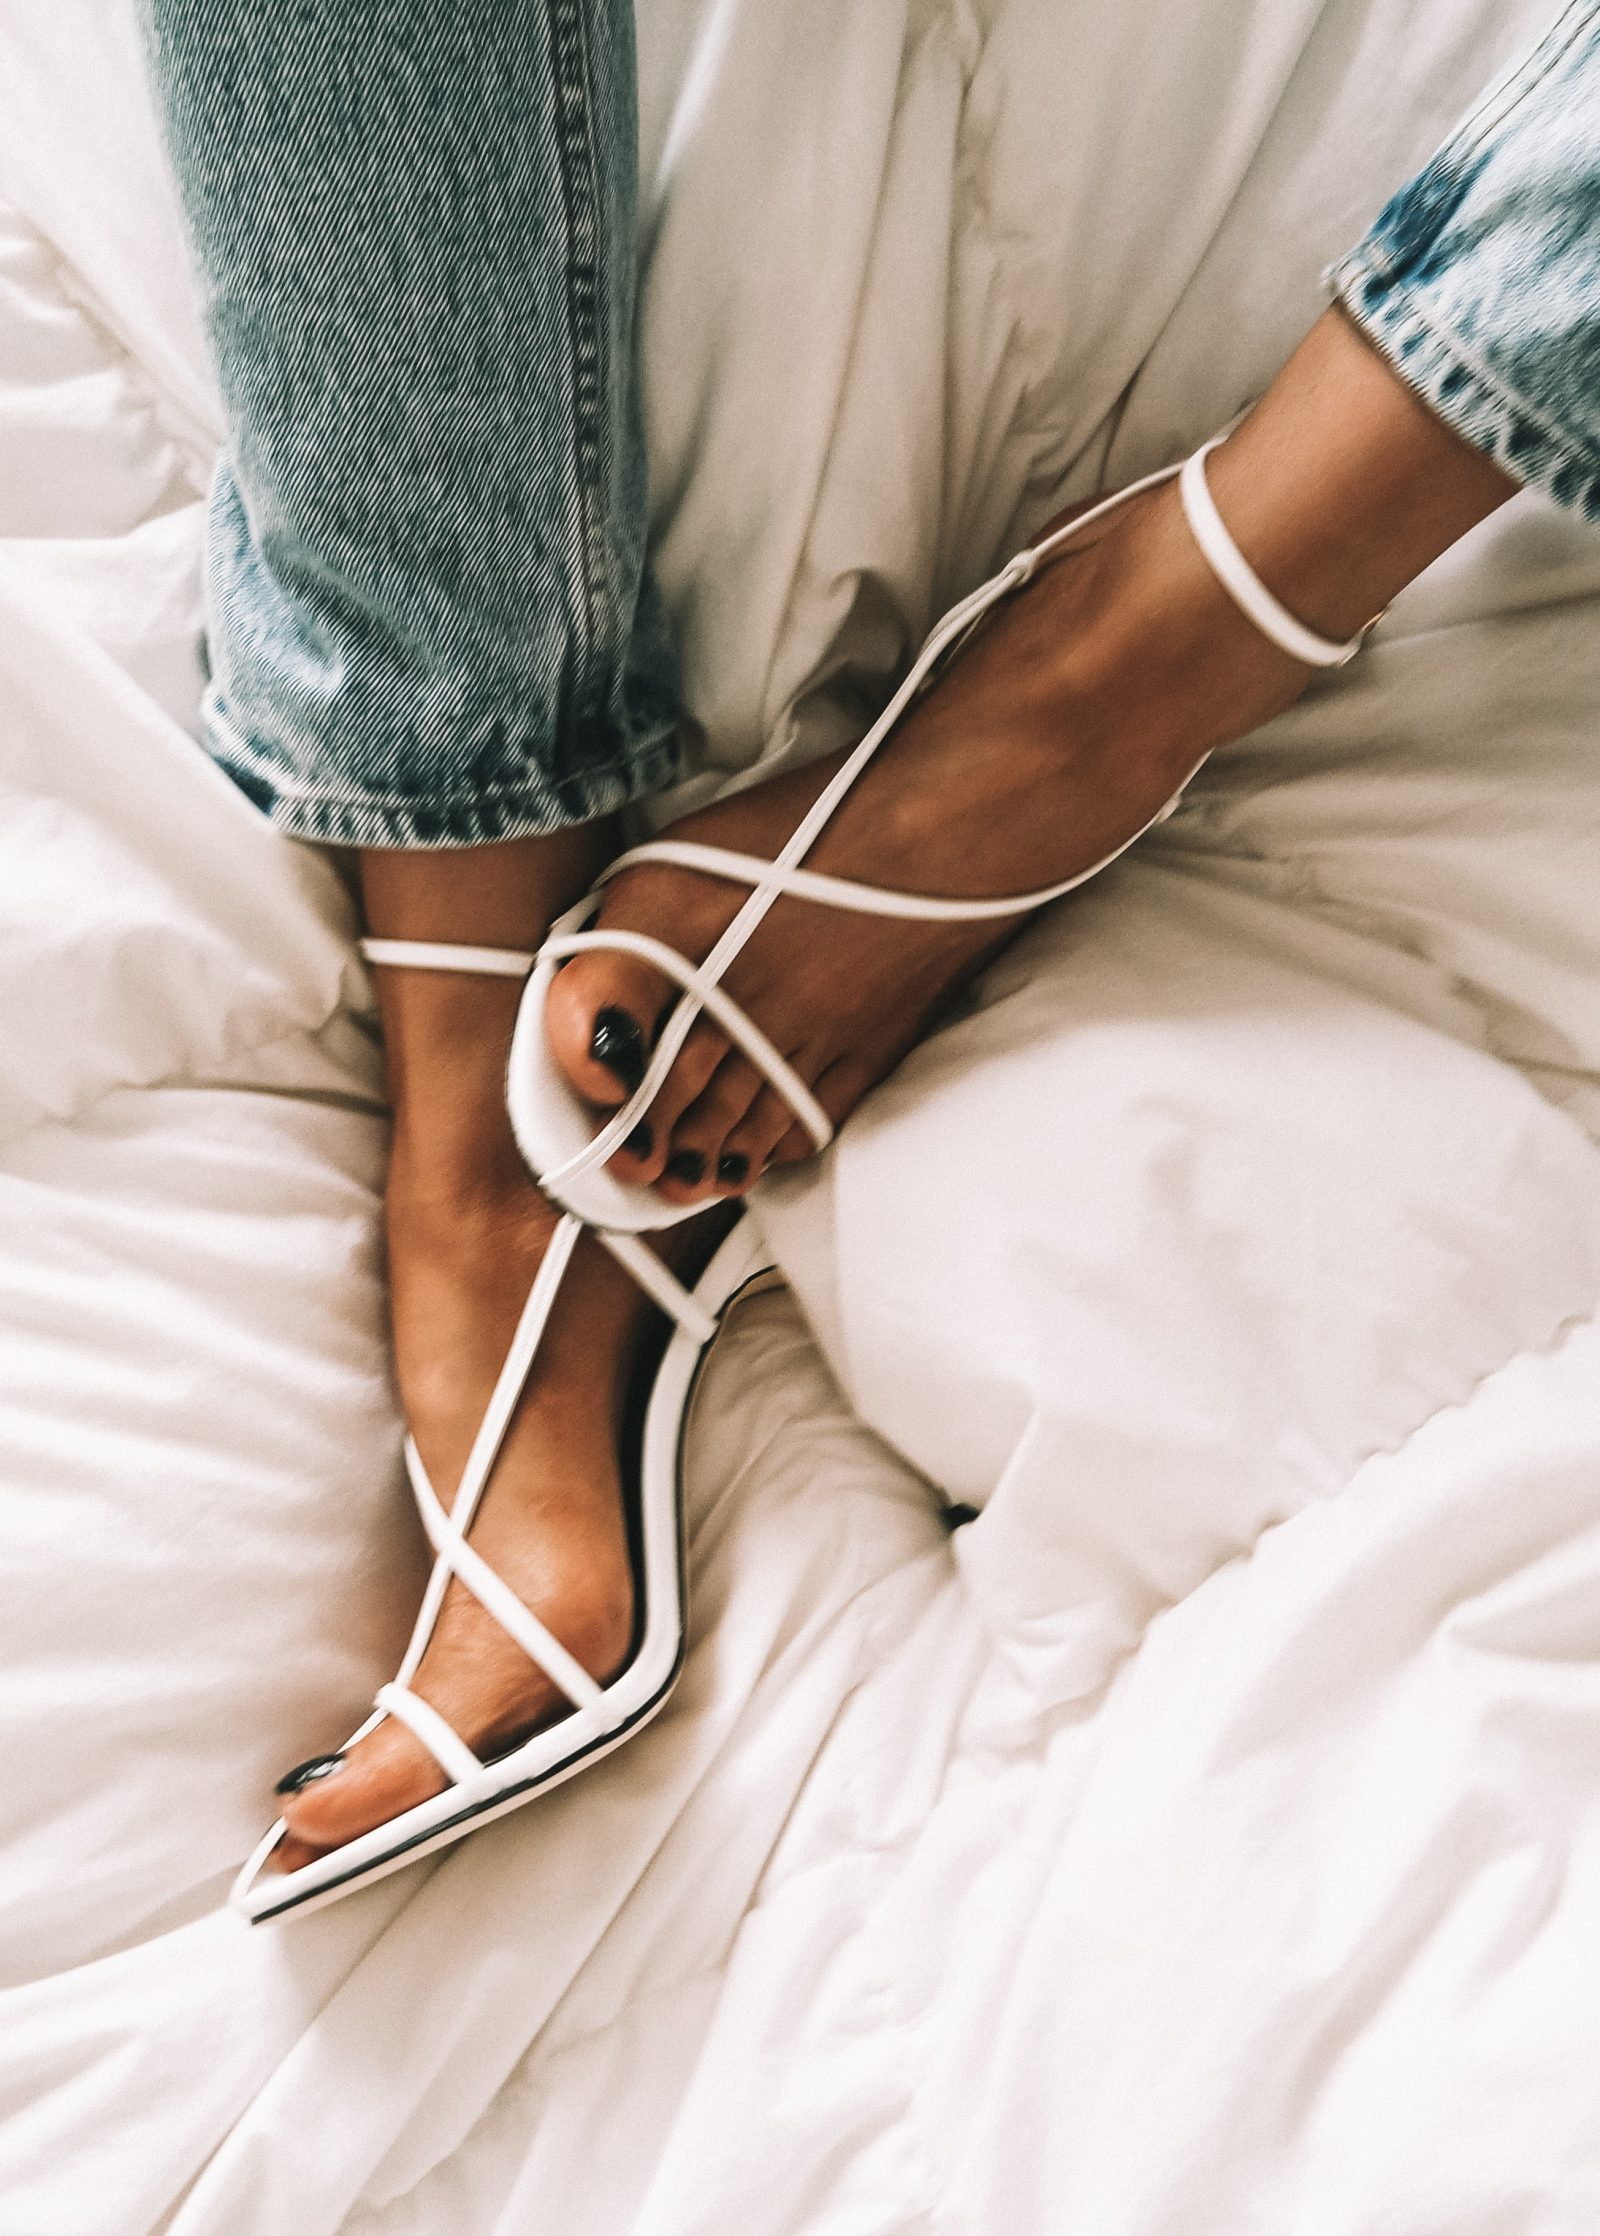 Revolve Cage Shoes - Celine Dupes - Fashion Blogger Sinead Crowe